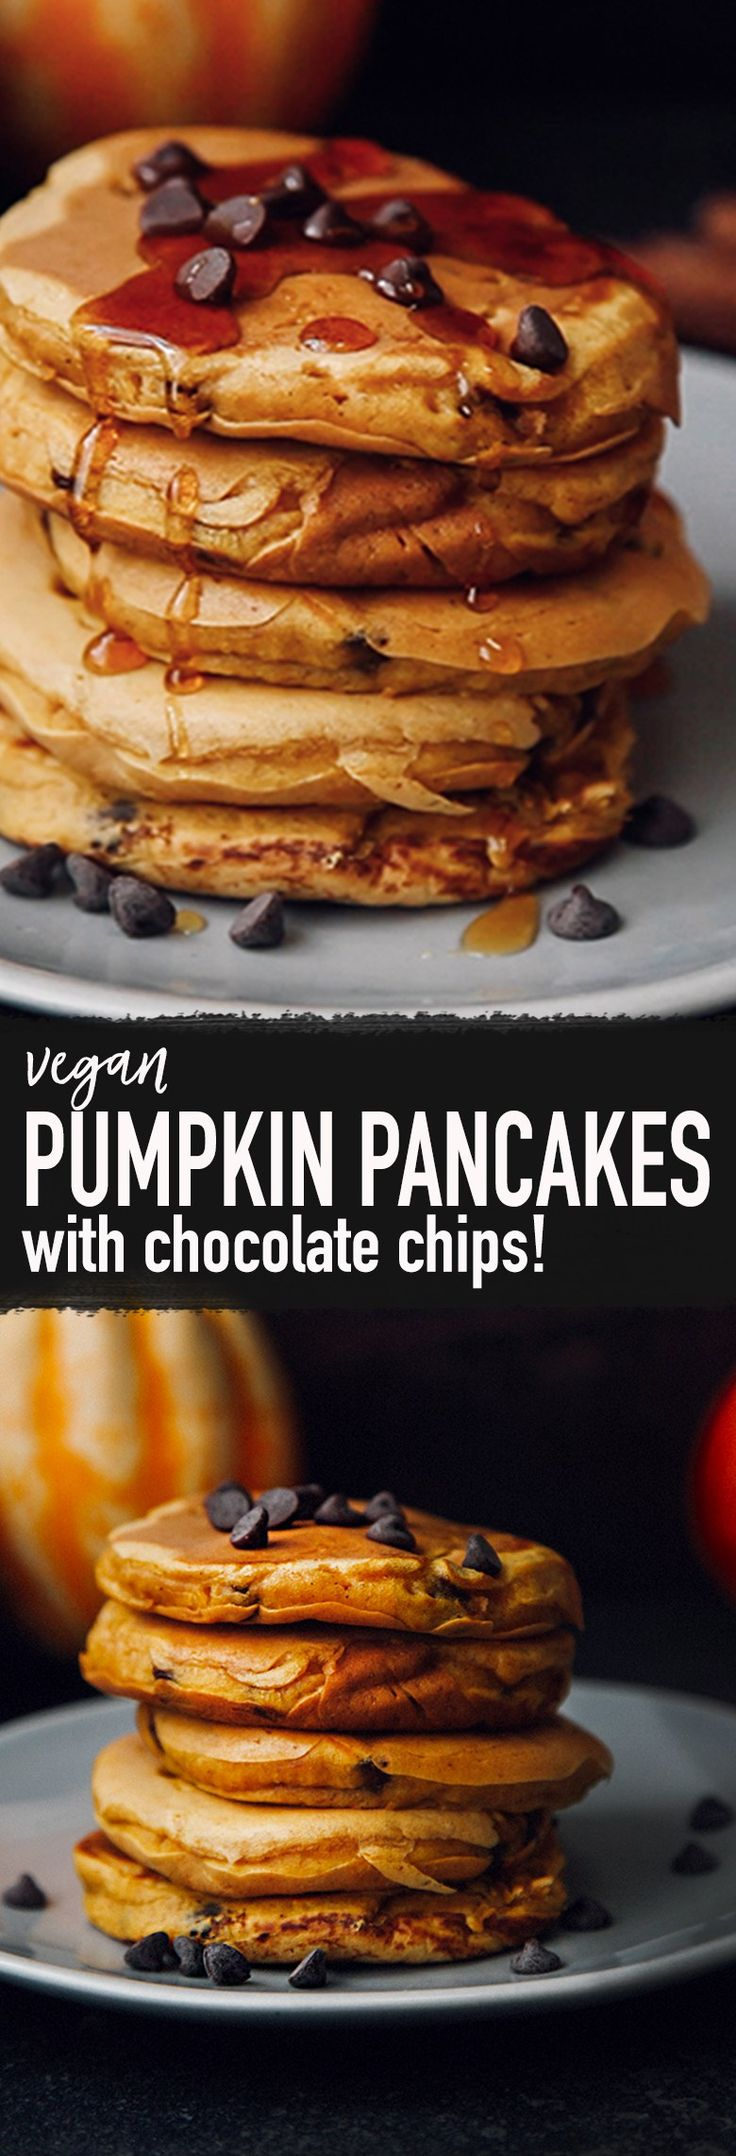 Fluffy Pumpkin Chocolate Chip Pancakes (Vegan)